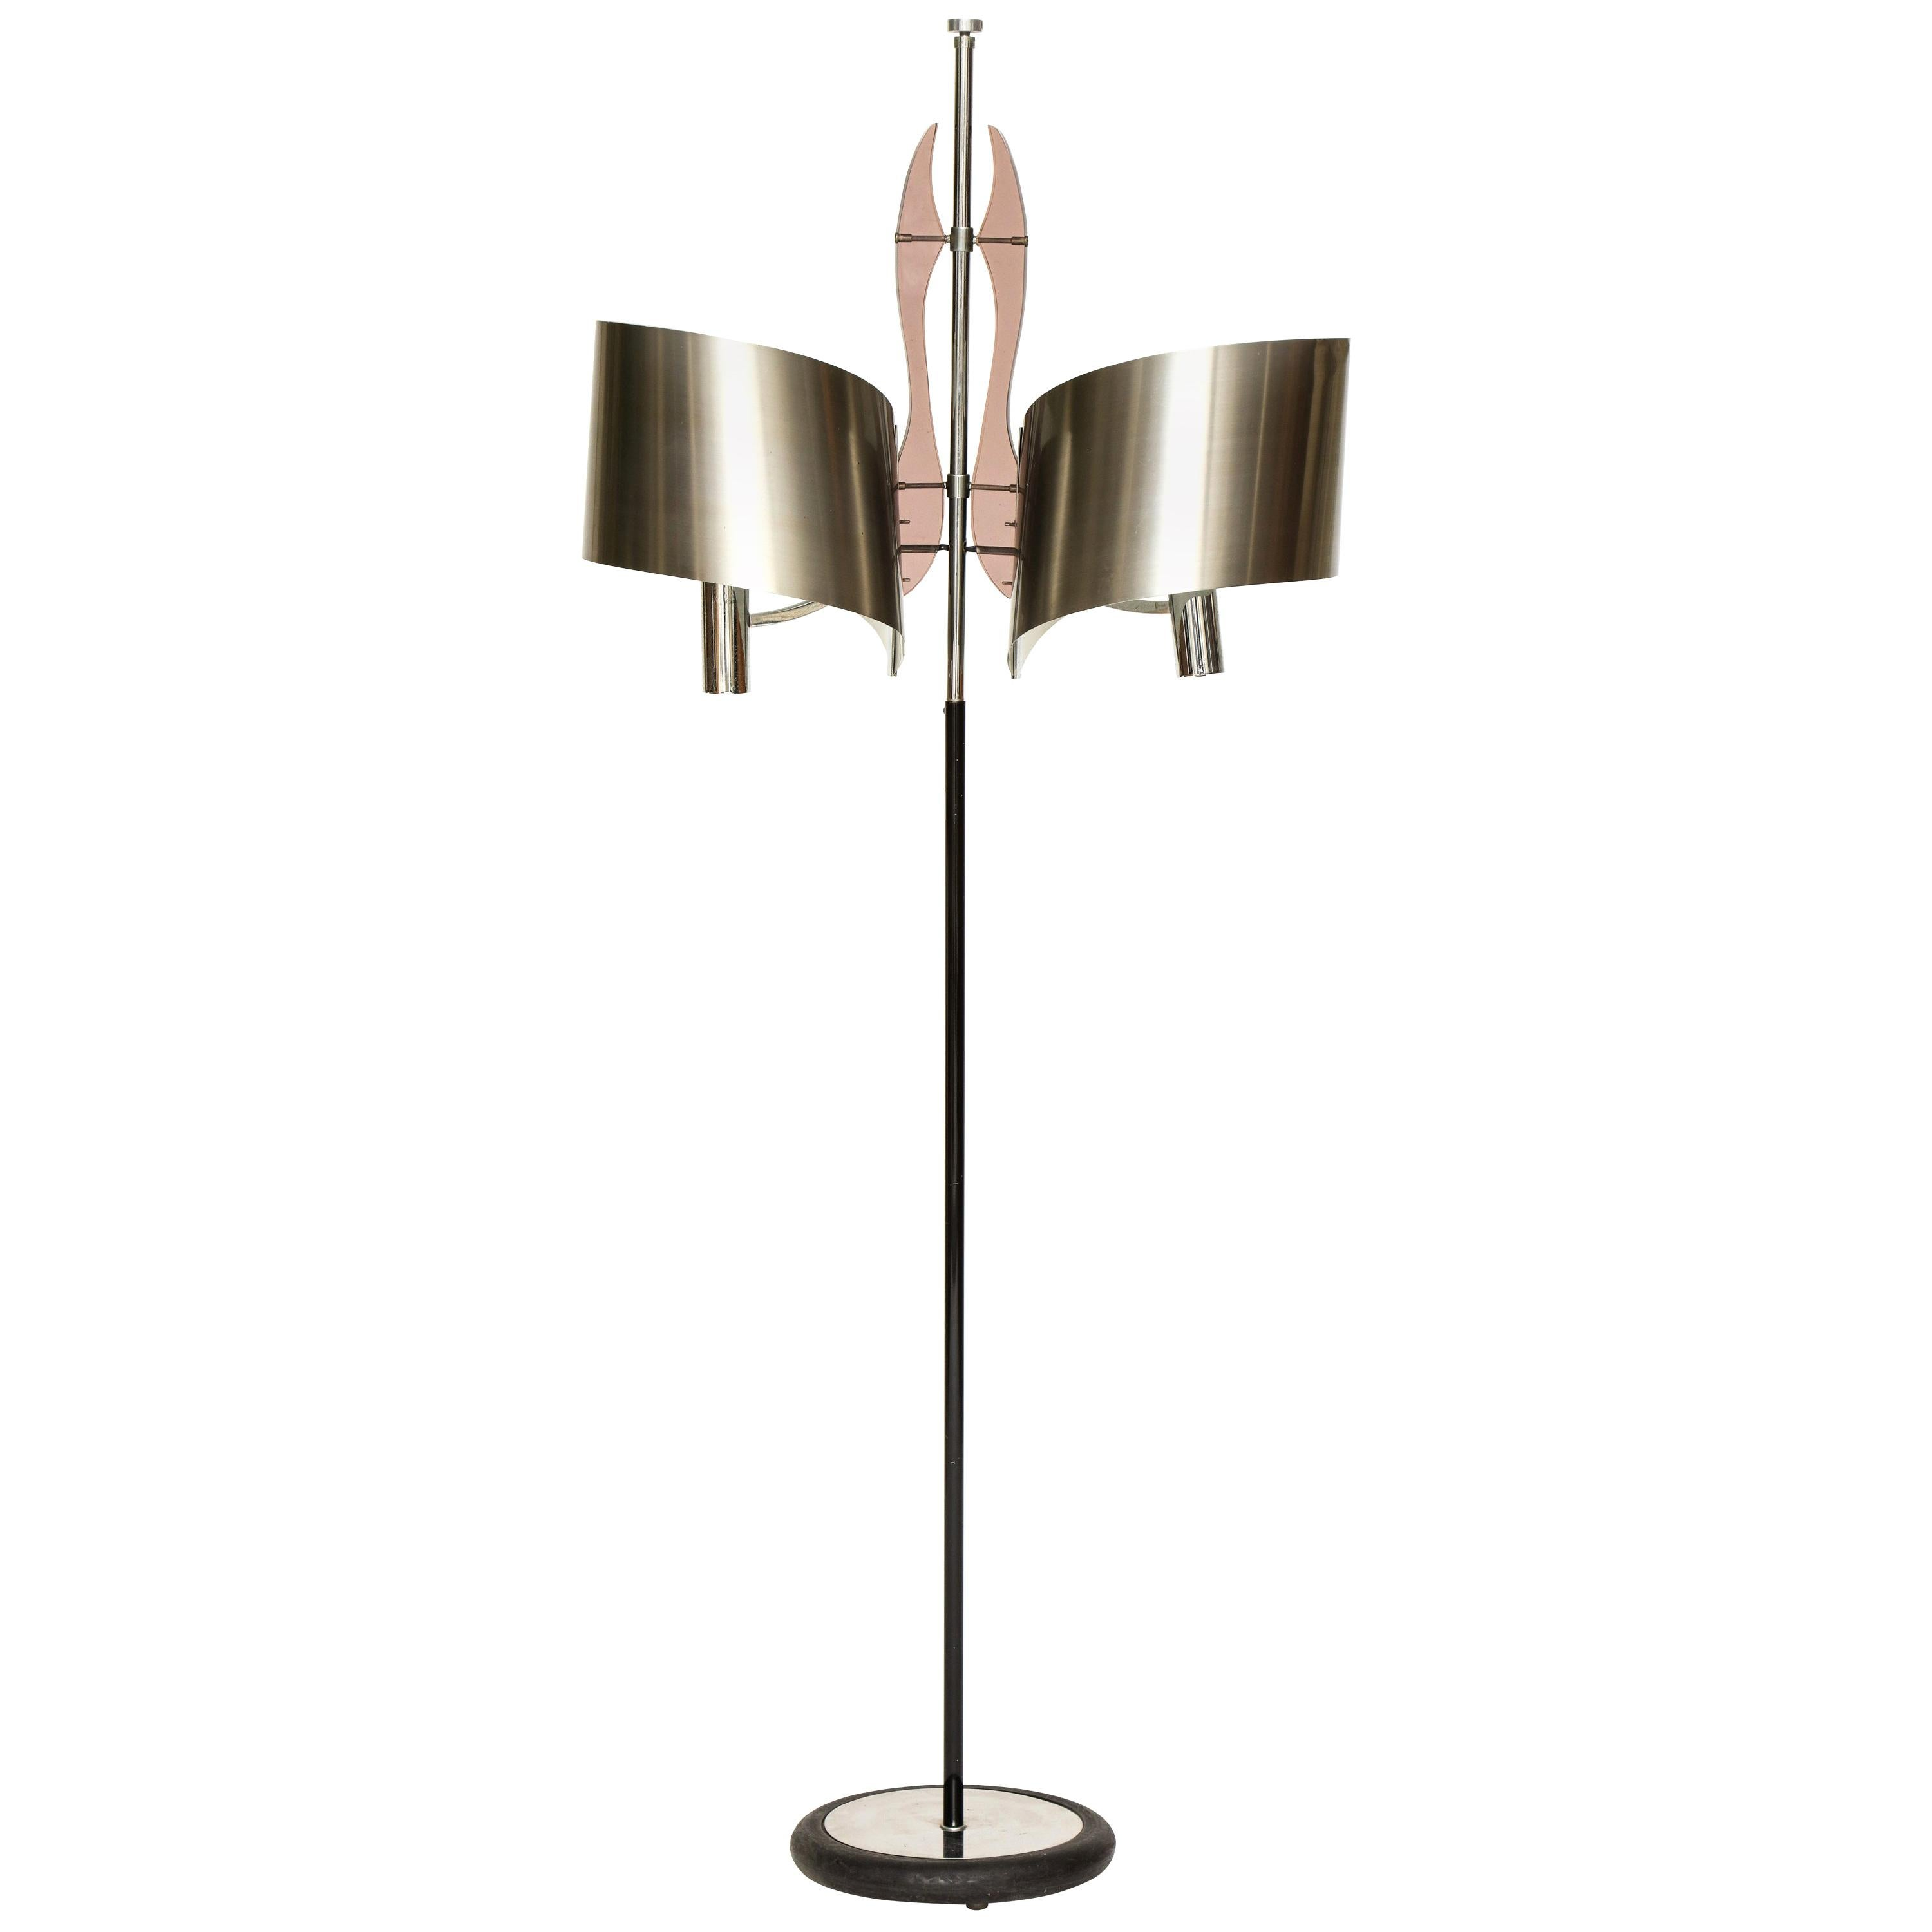 Maison Charles Standing Floor Lamp with Stainless Steele Shade, 1970s, France